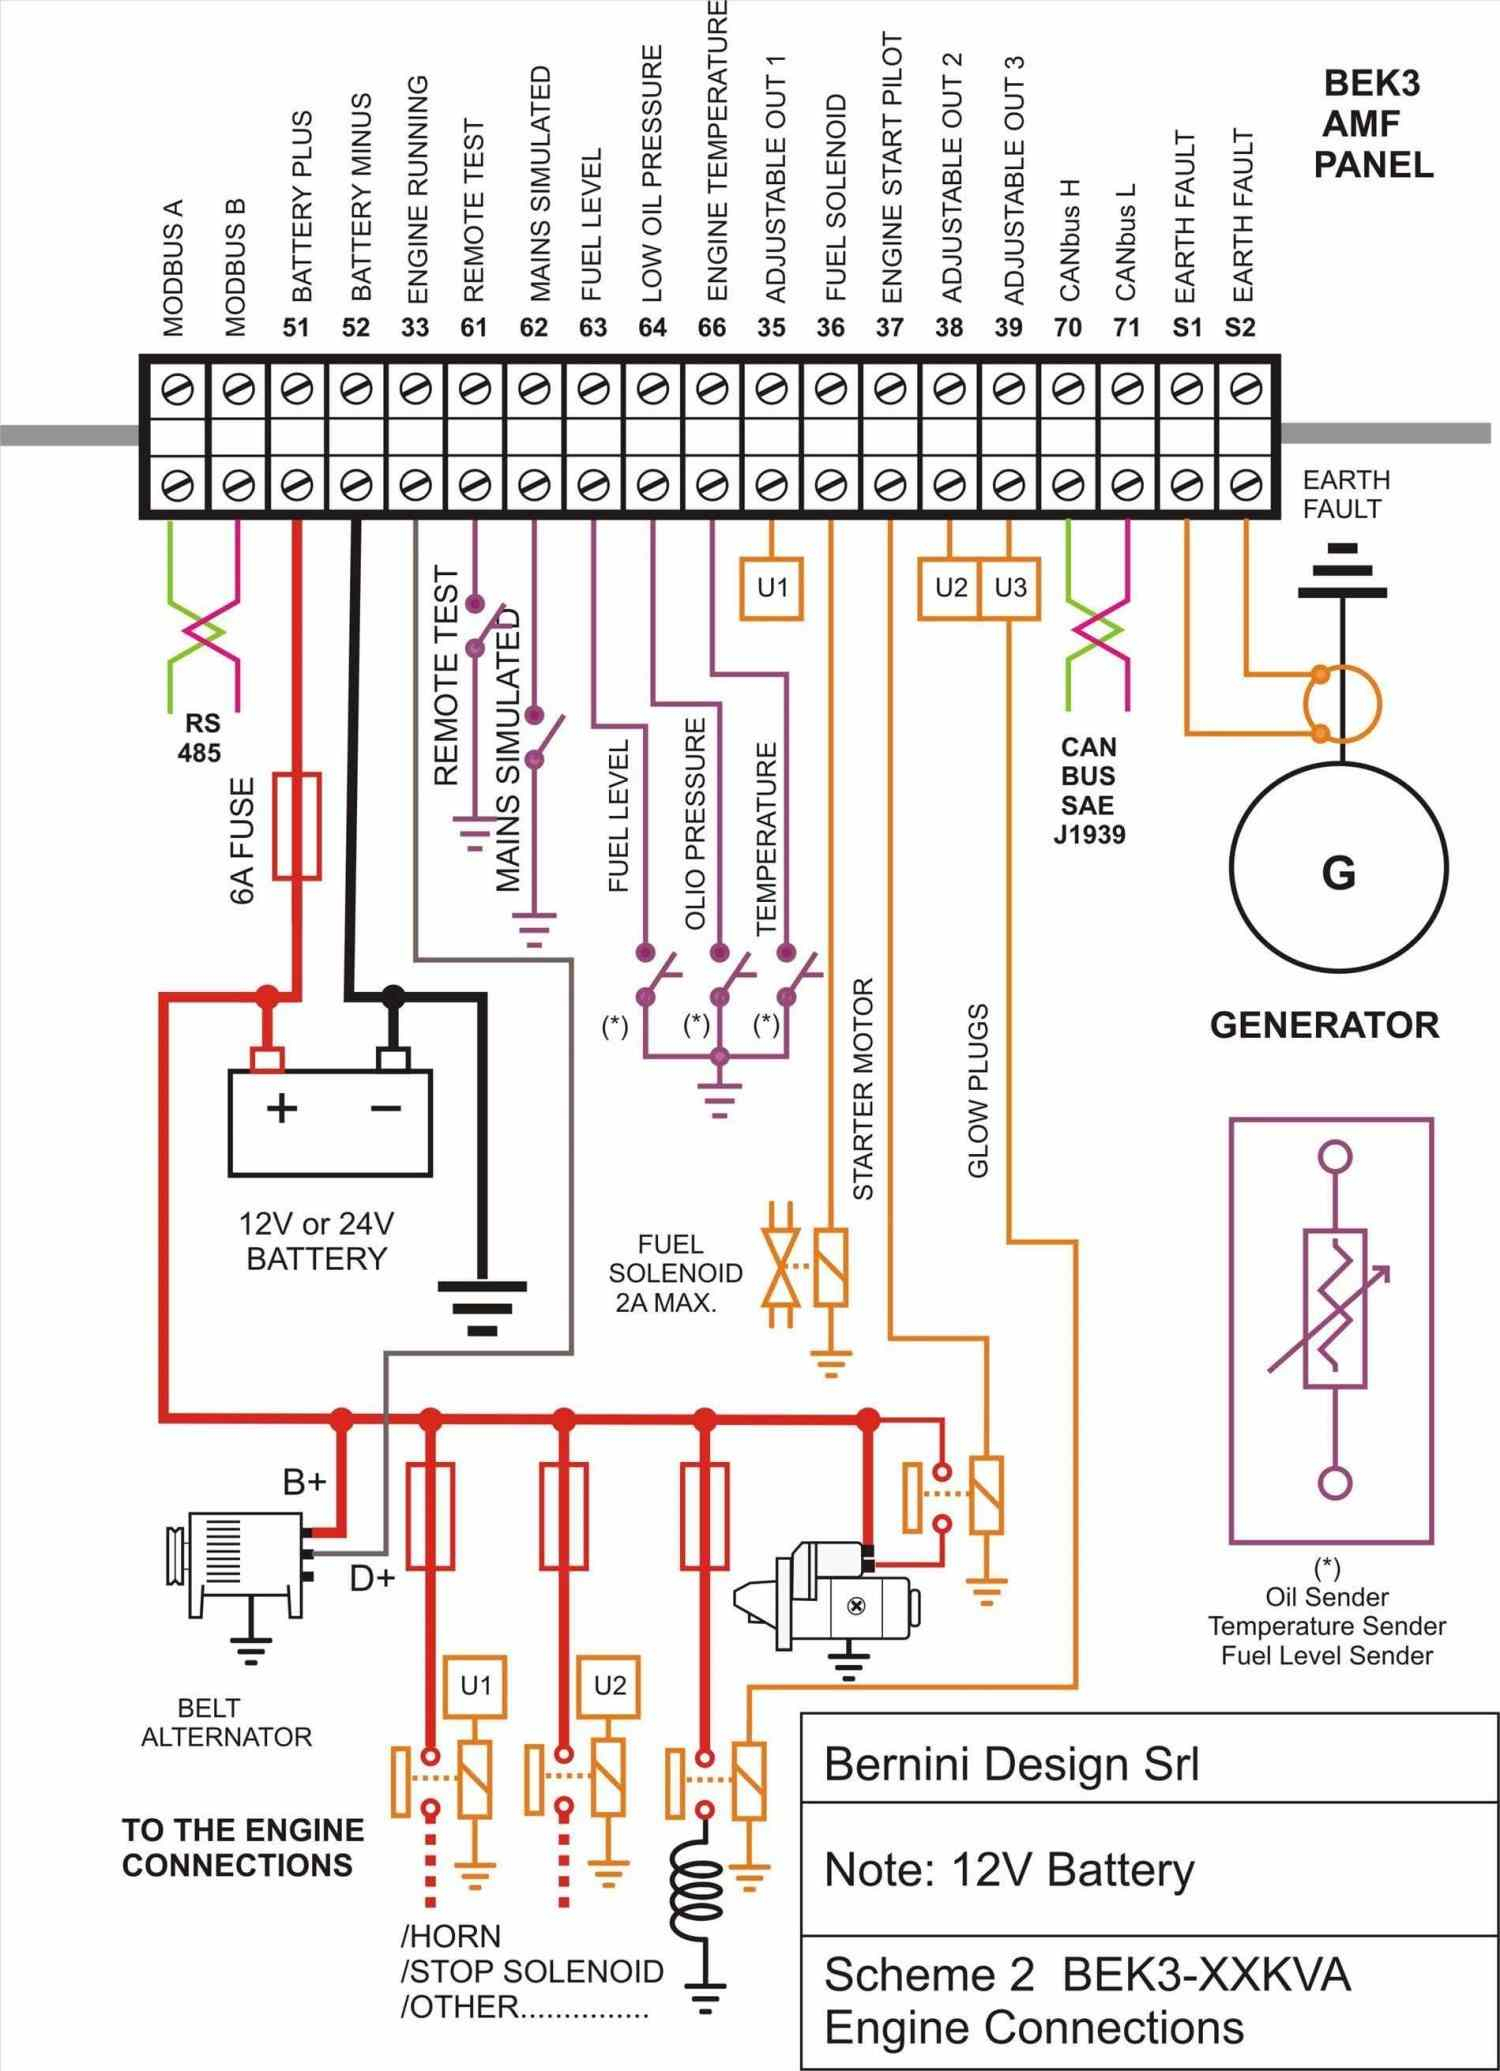 Thermostat Wires On Furnace Control Diagram | Manual E-Books - Gas Furnace Thermostat Wiring Diagram